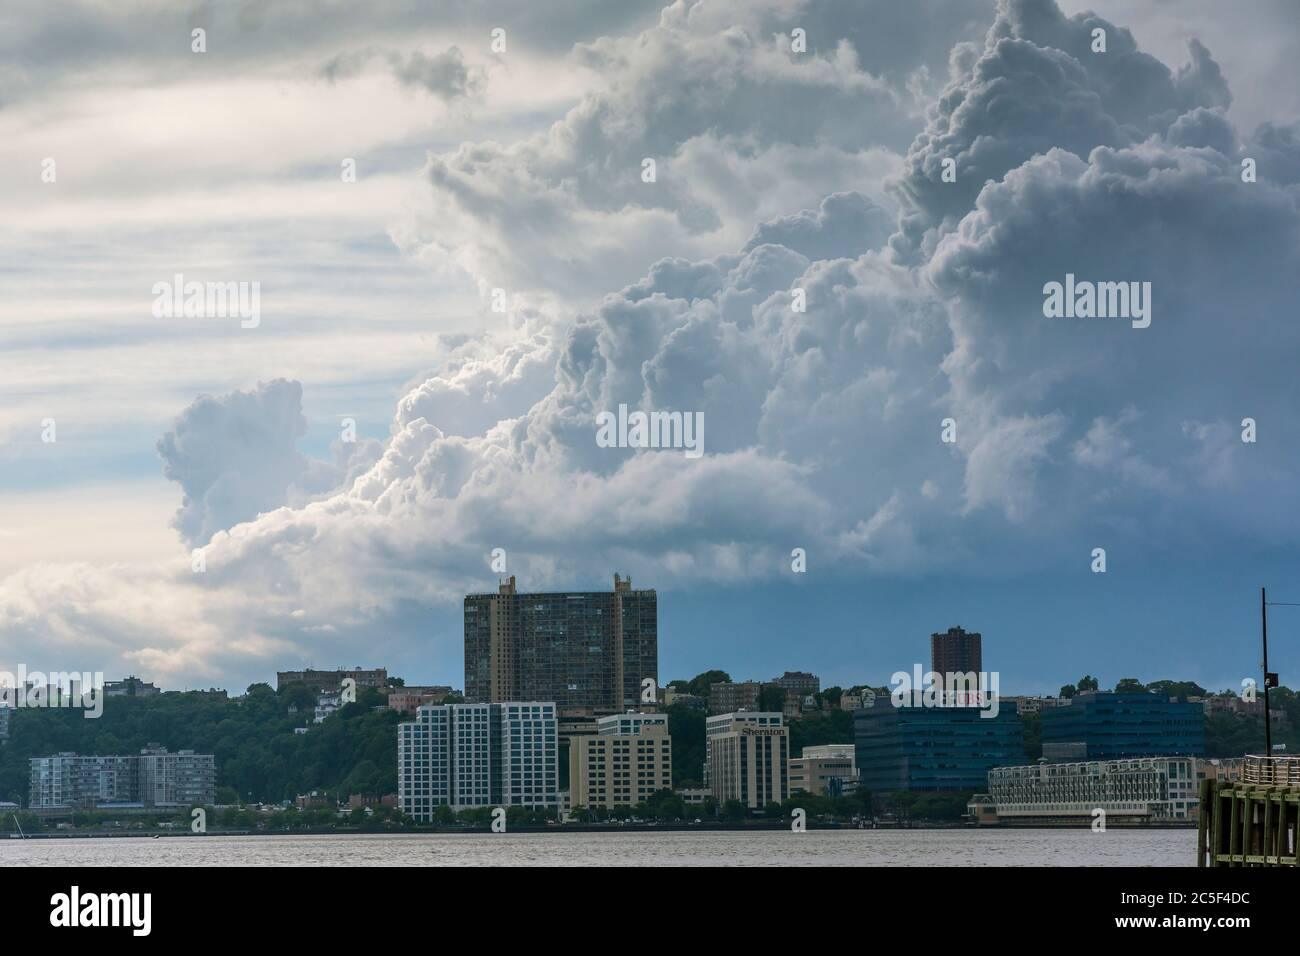 Clouds above Hobken, New Jersey seen from Hudson River Park in New York on Saturday, June 27, 2020 Stock Photo